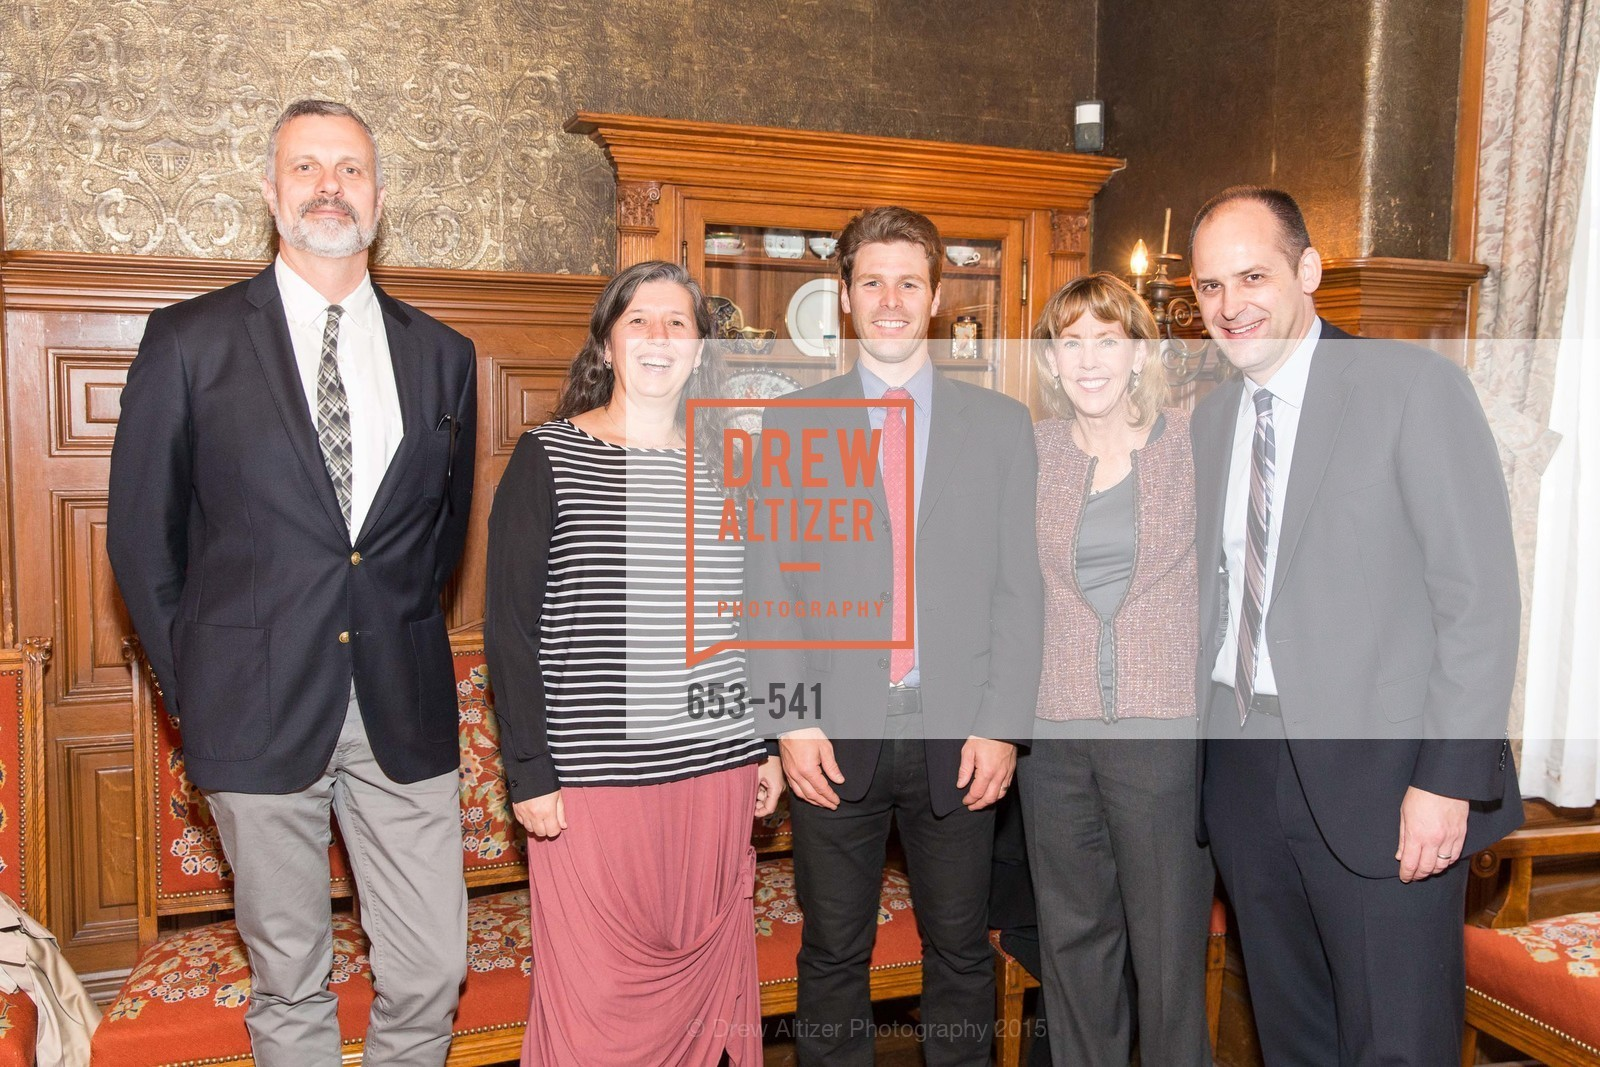 Brian Turner, Barbara Pahl, Mike Buhler, Ceremony Inaugurating the Campaign for San Francisco Heritage & Haas-Lilienthal House, Haas-Lilienthal House. 2007 Franklin Street, November 18th, 2015,Drew Altizer, Drew Altizer Photography, full-service agency, private events, San Francisco photographer, photographer california